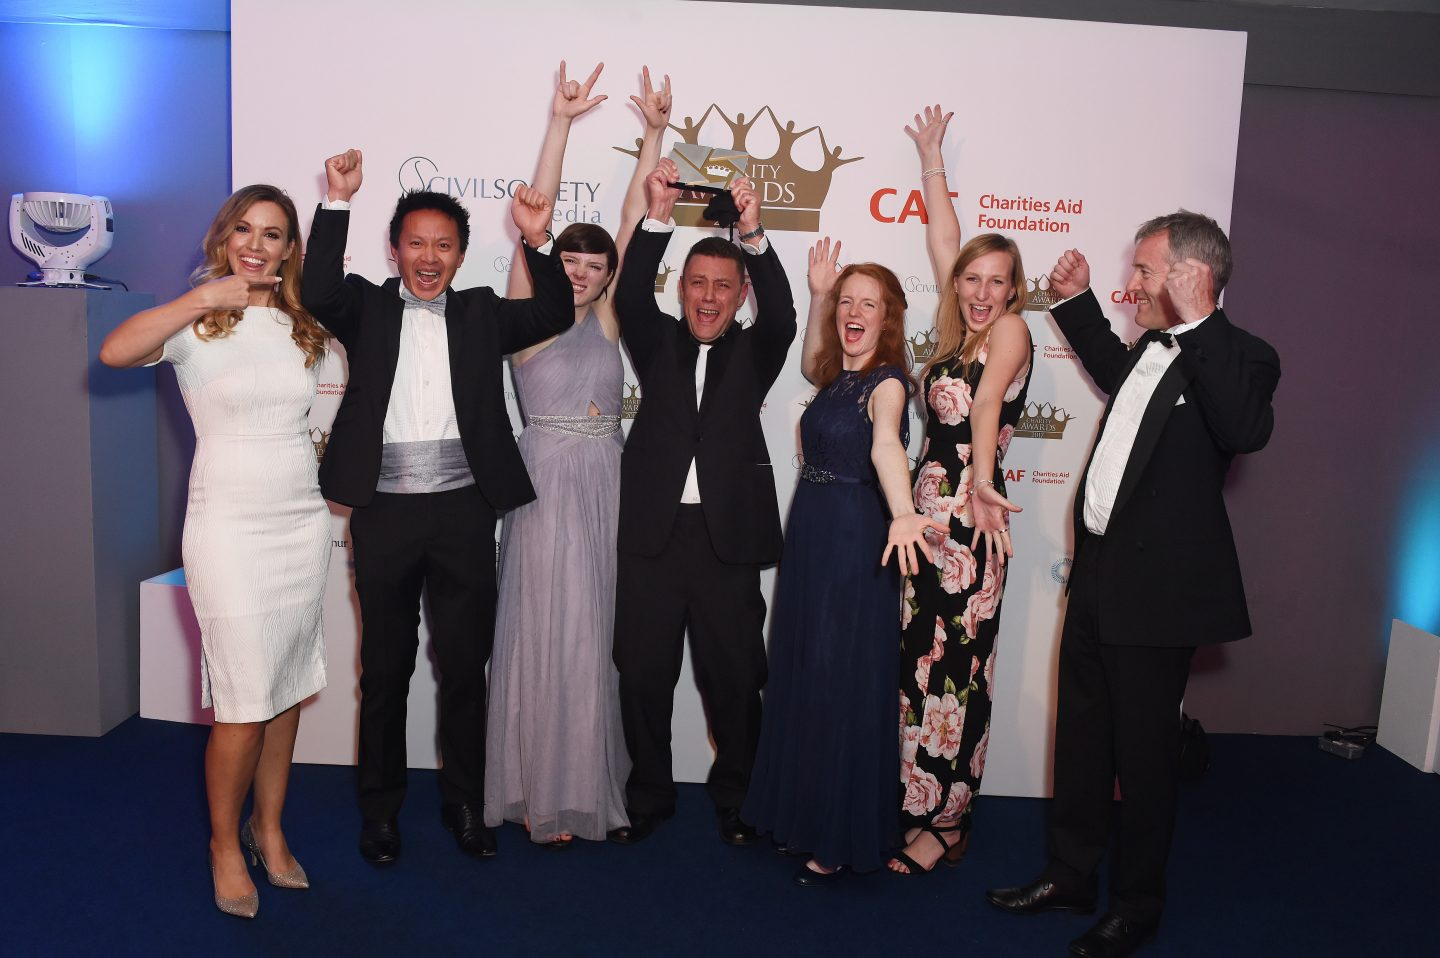 Charity Awards 2018 opens for applications